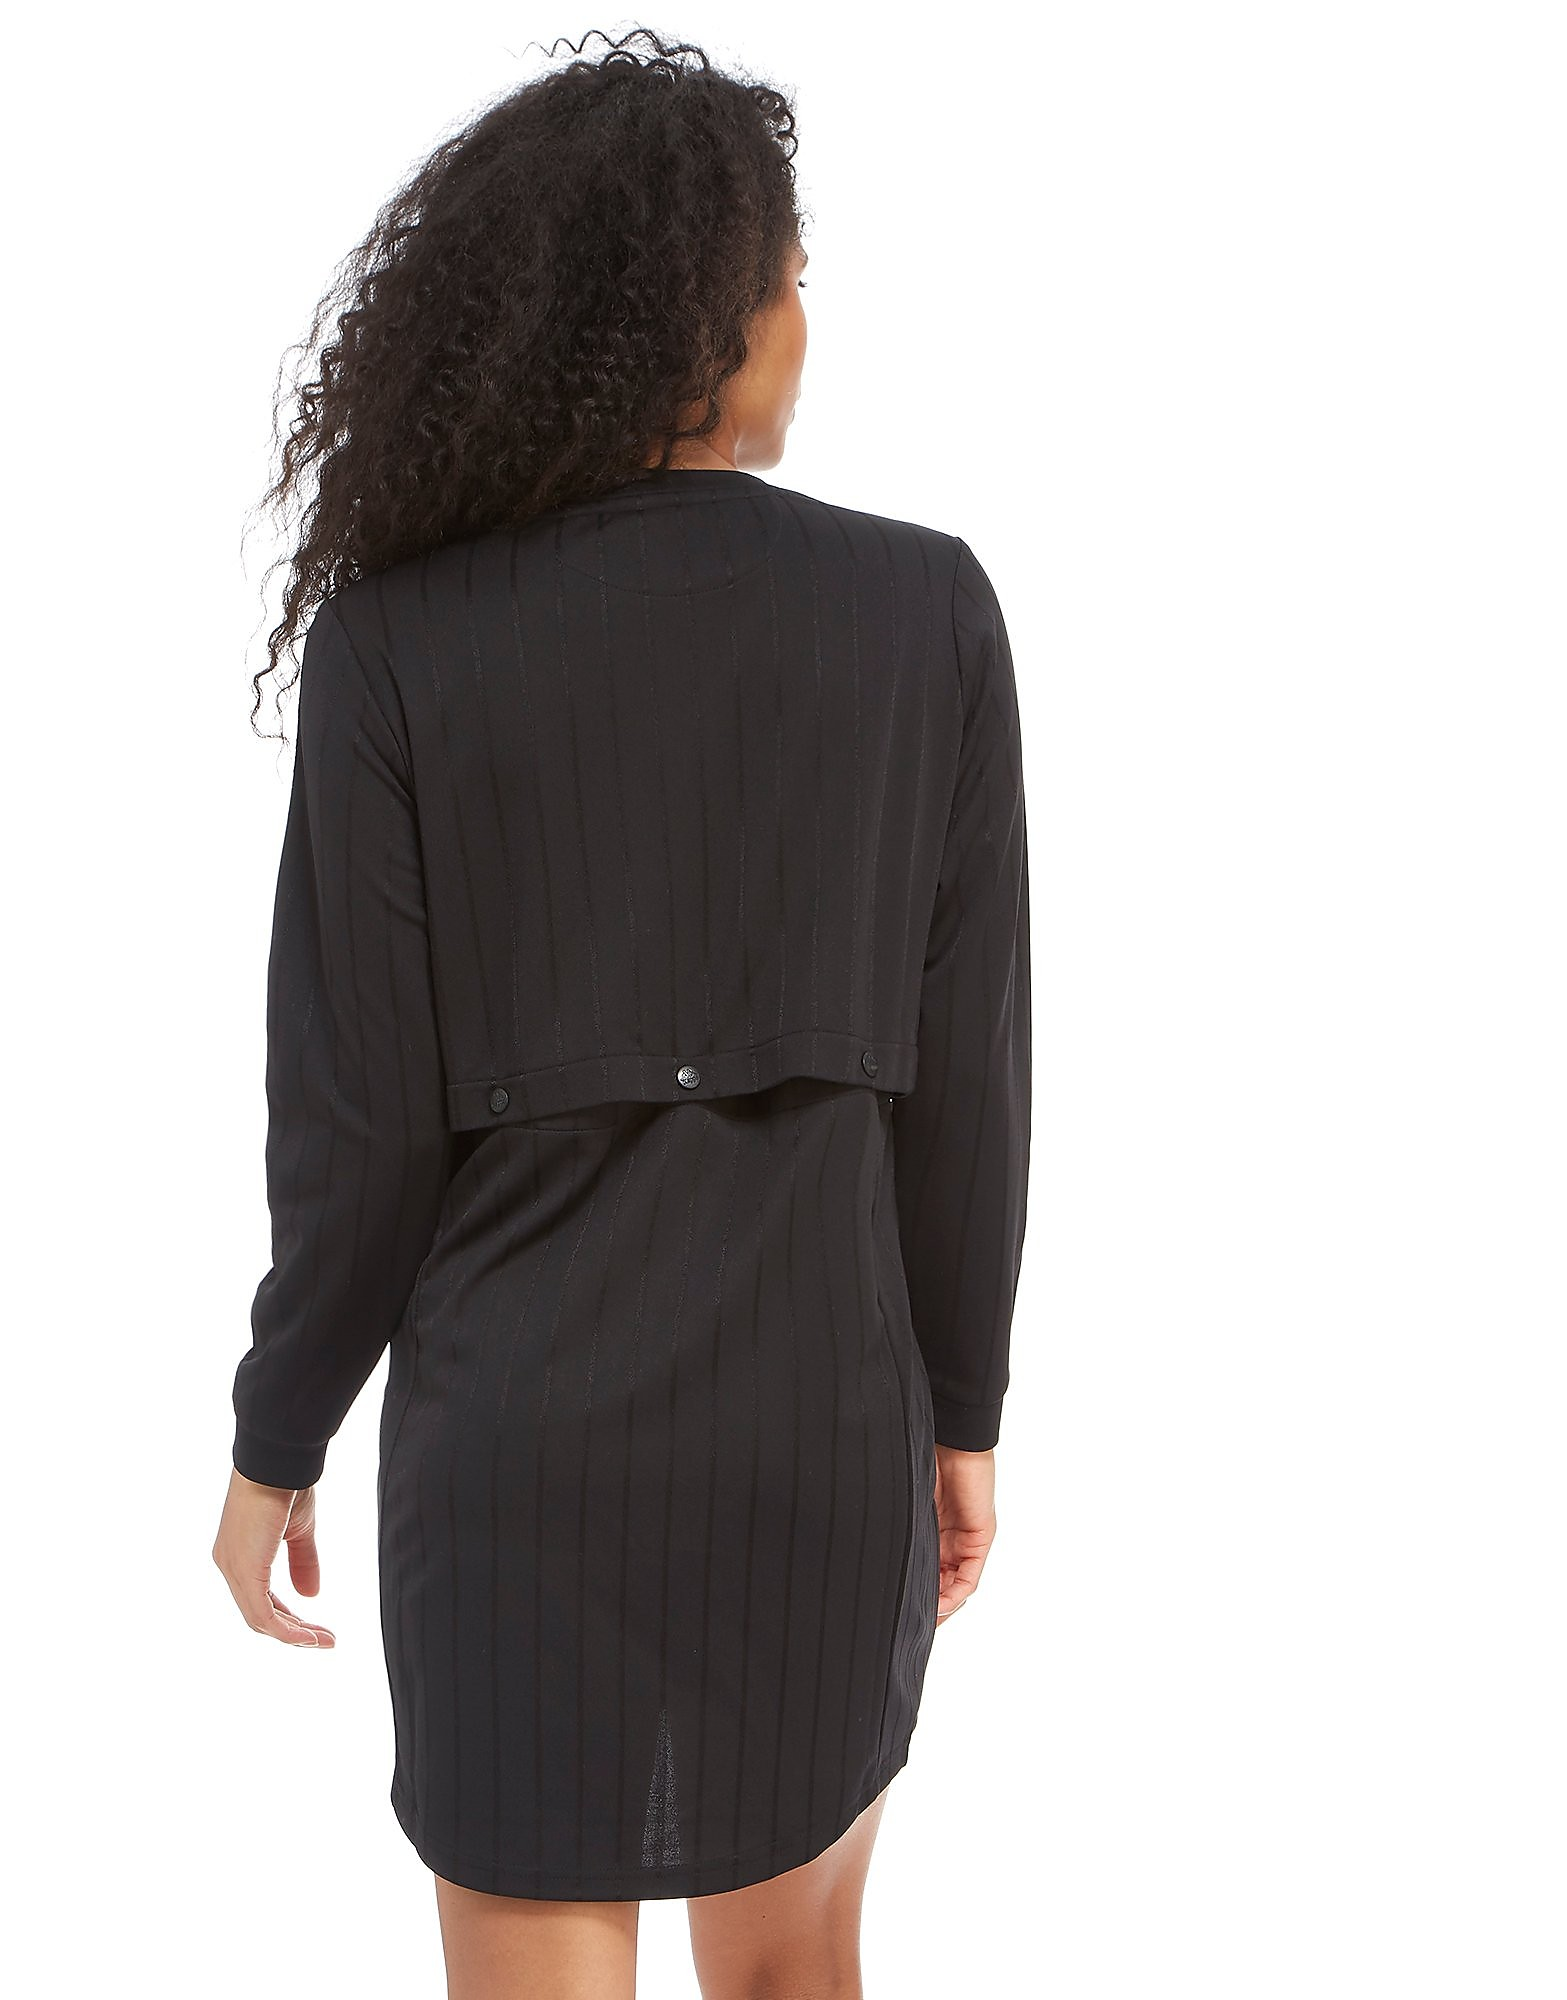 Kappa Popper Long Sleeve Dress